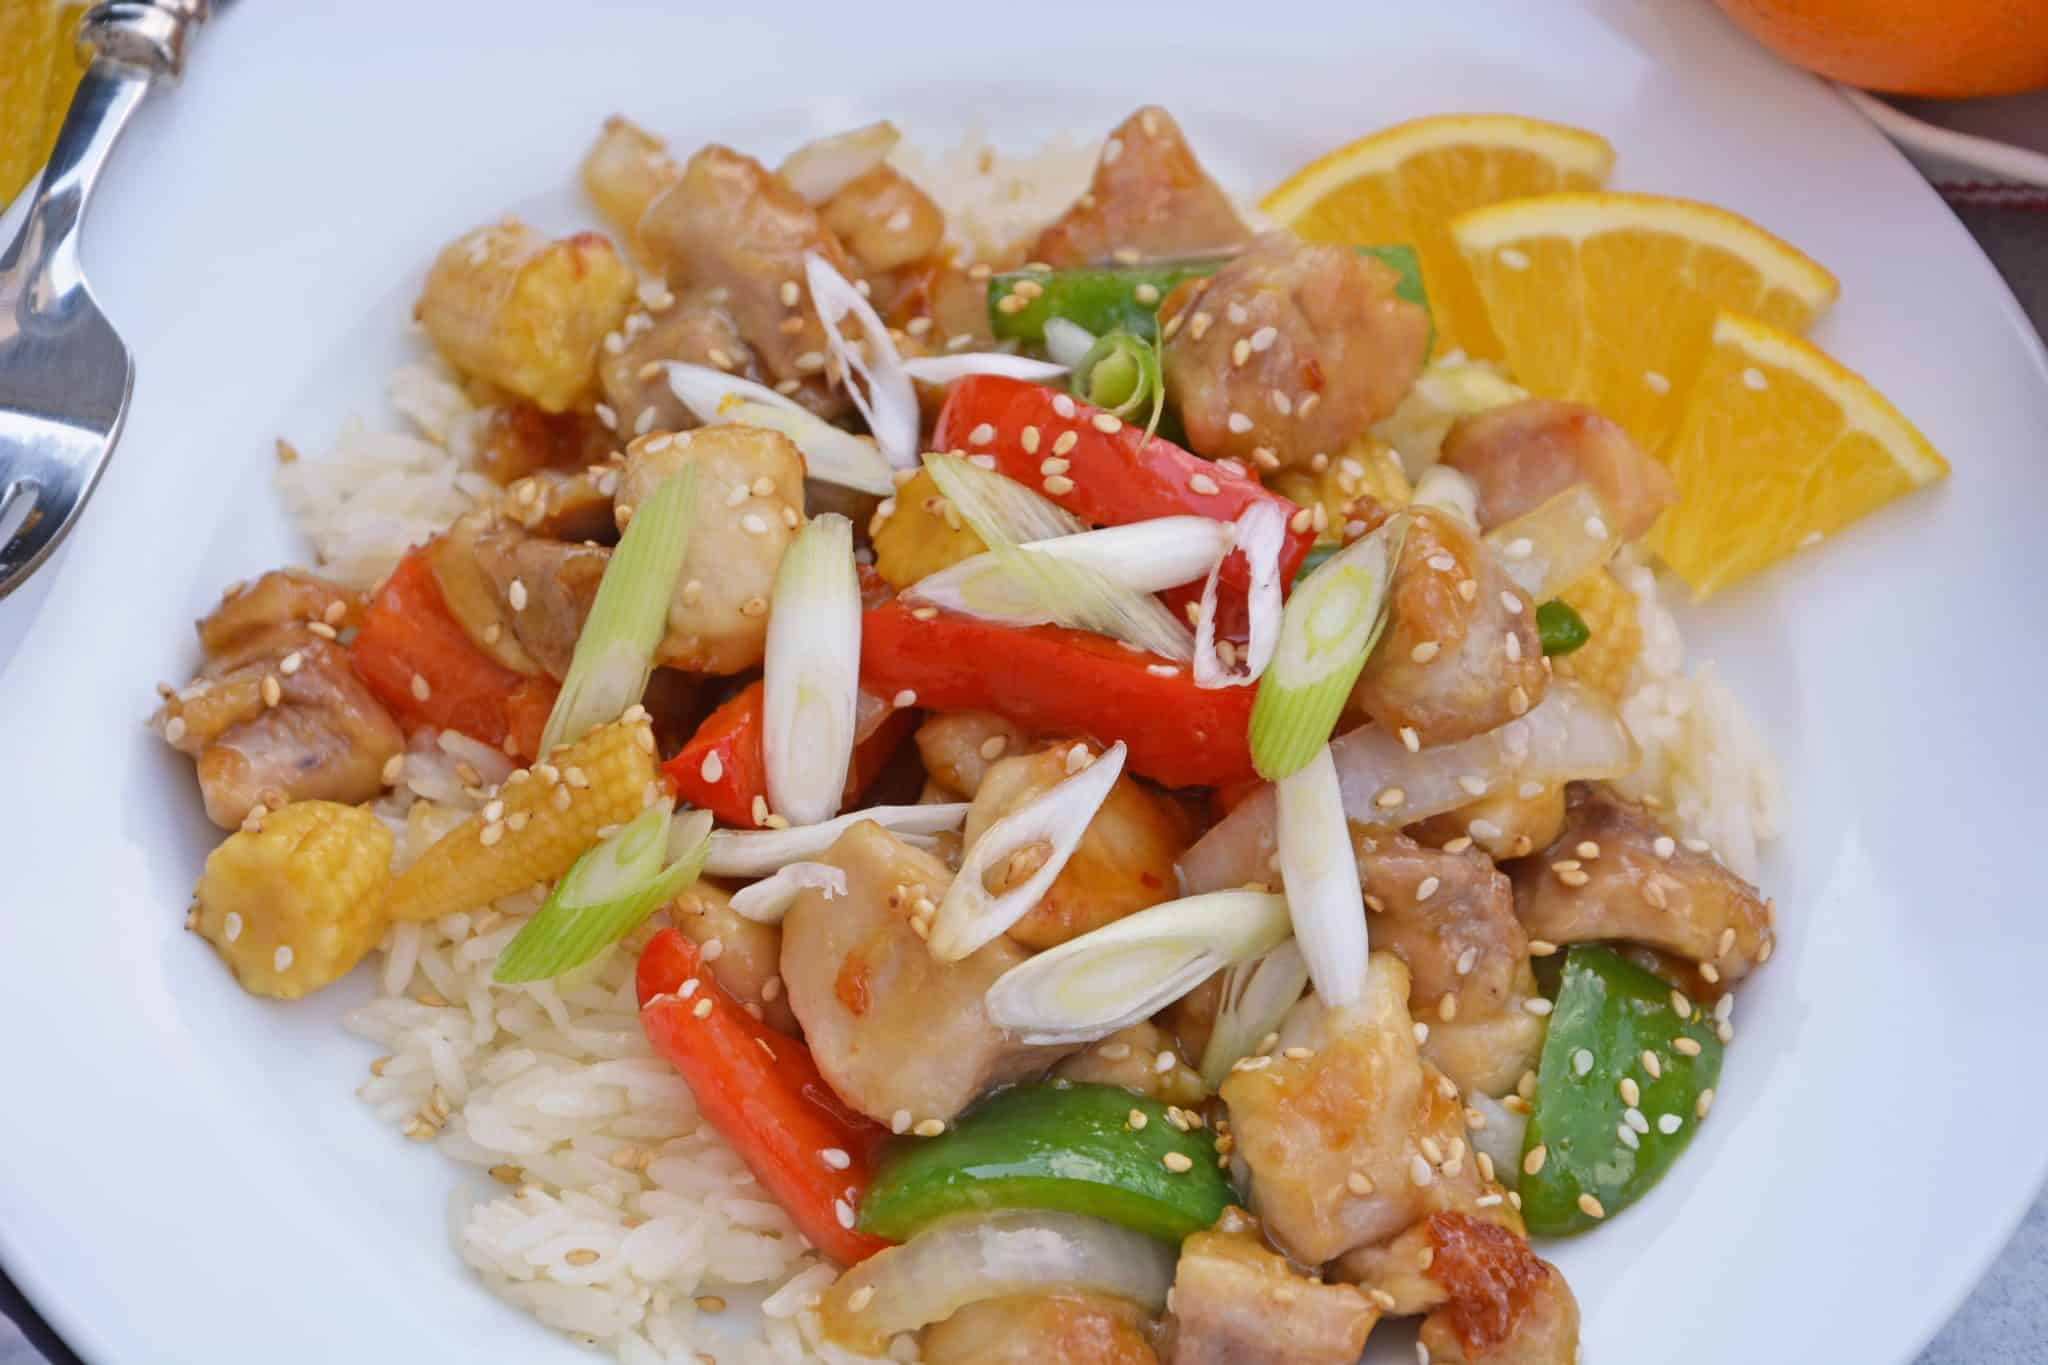 This Orange Chicken Recipe is amped up with bell pepper, baby corn and carrots in a delicious savory orange sauce over rice. Garnish with scallions sesame seeds and orange zest for the best homemade Chinese food. #homemadeorangechicken #orangechickenrecipe www.savoryexperiments.com